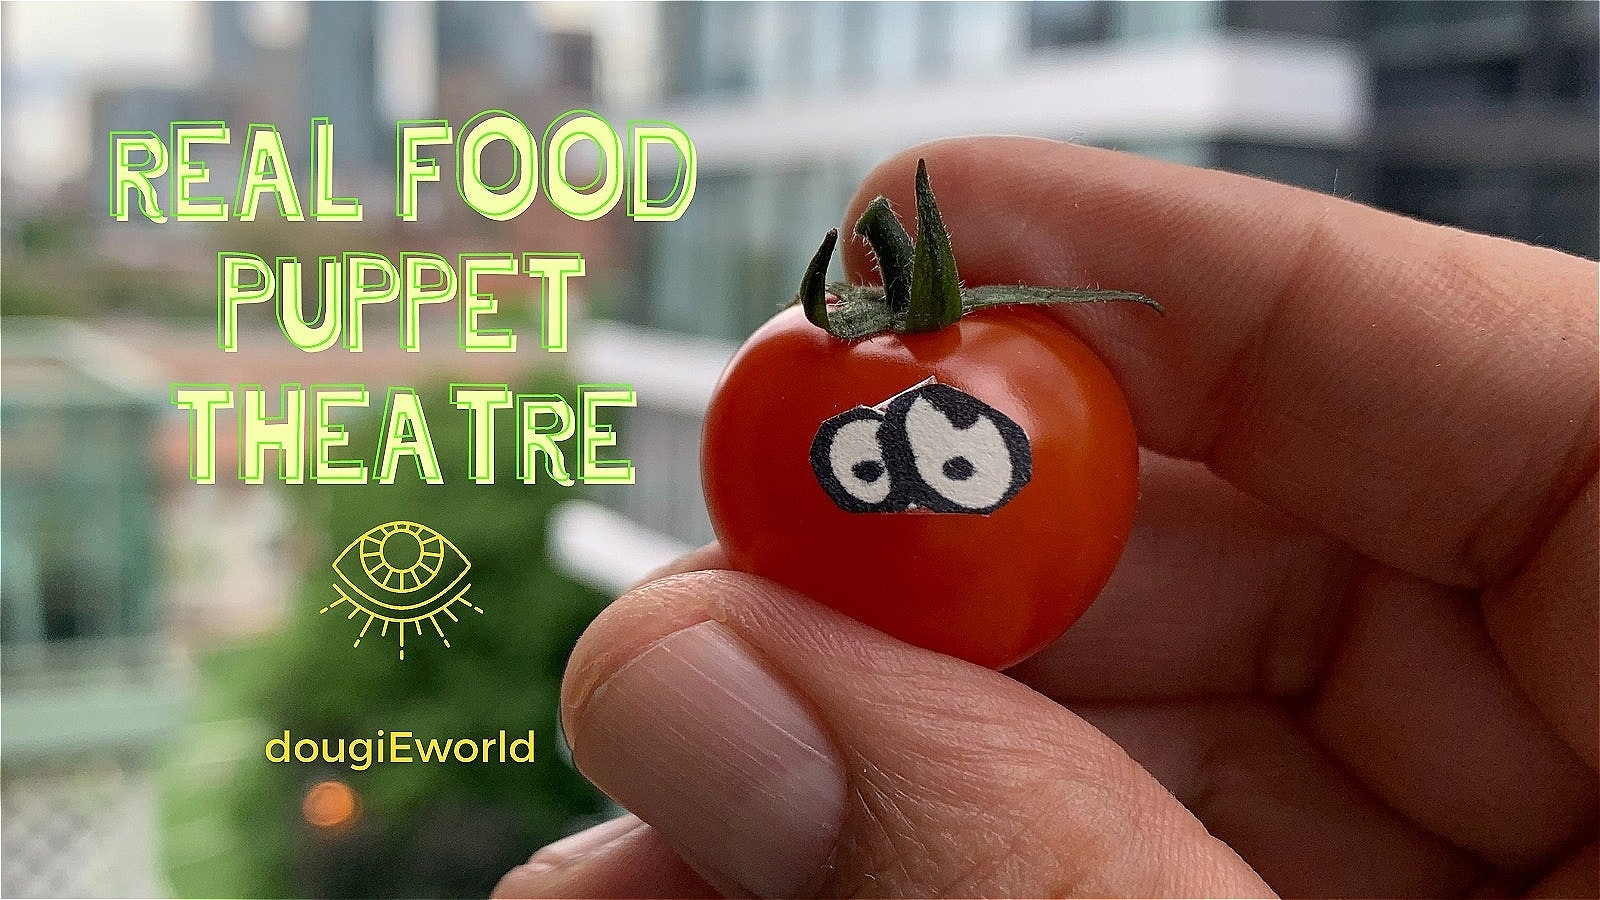 dougiEworld Real Food Puppet Theatre